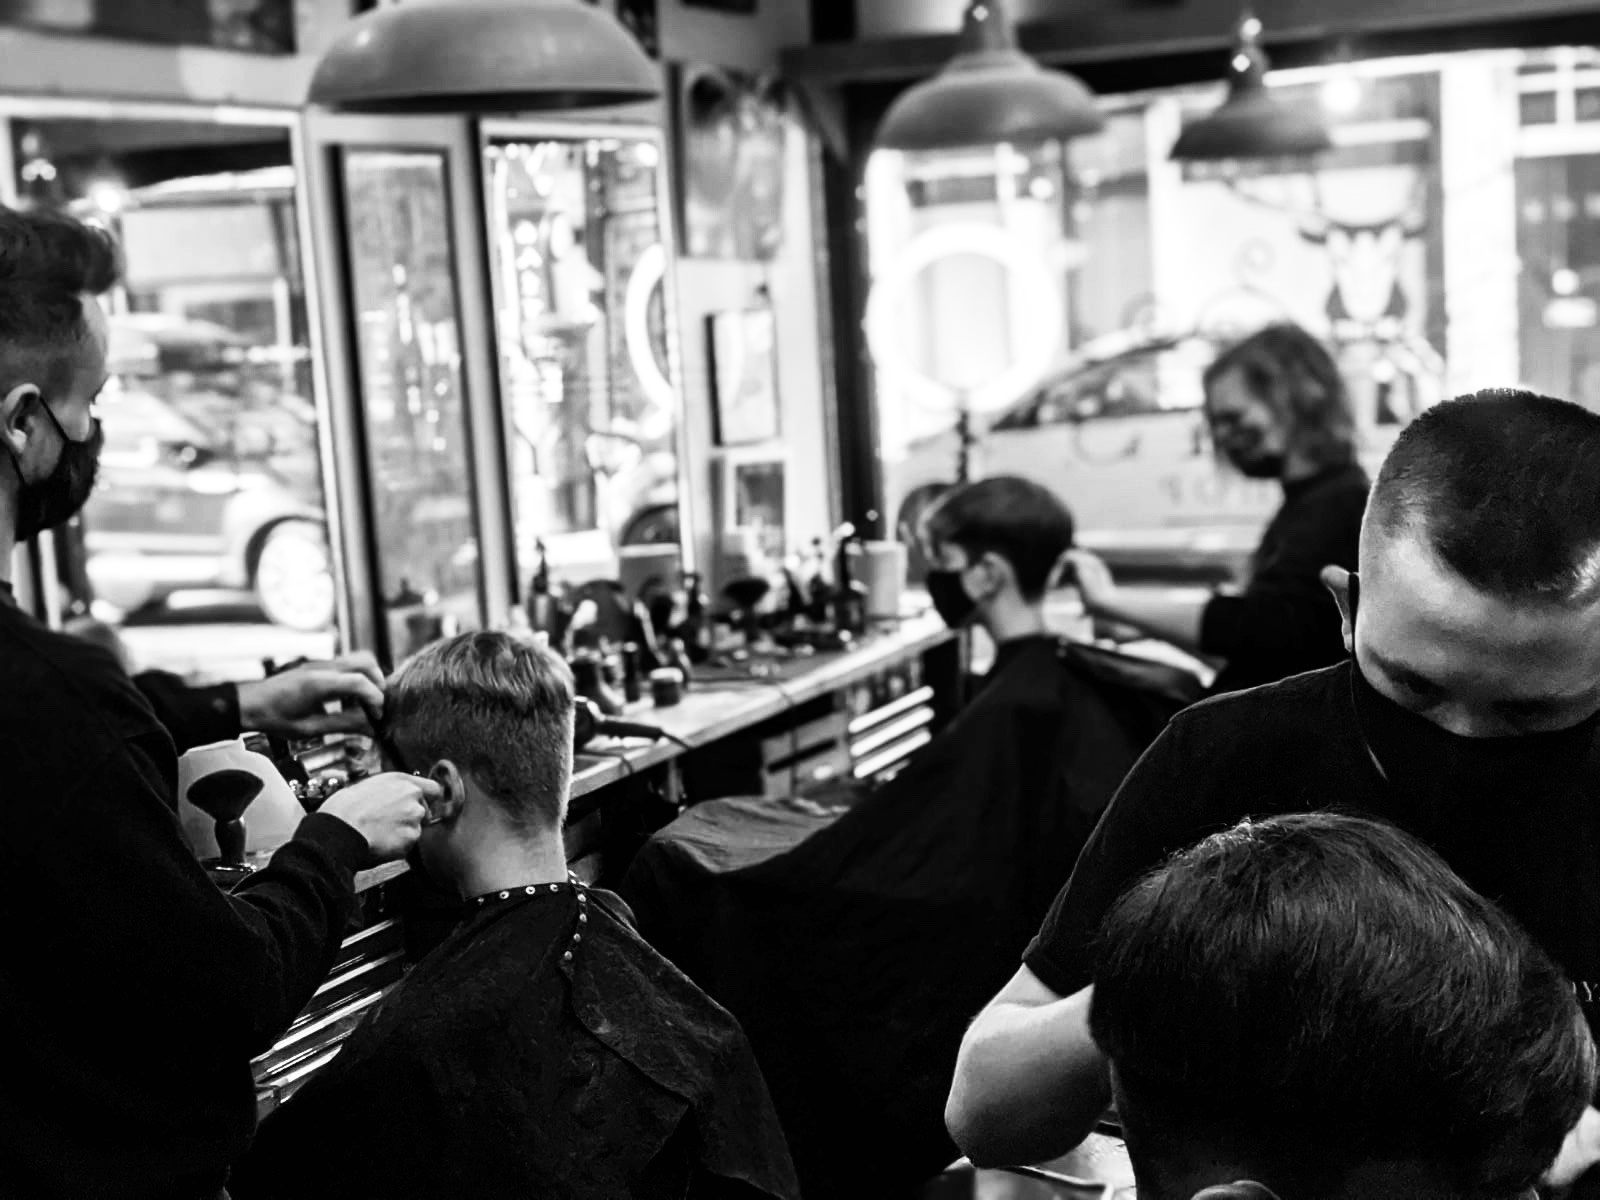 The rest of the team at Reidys Barber shop